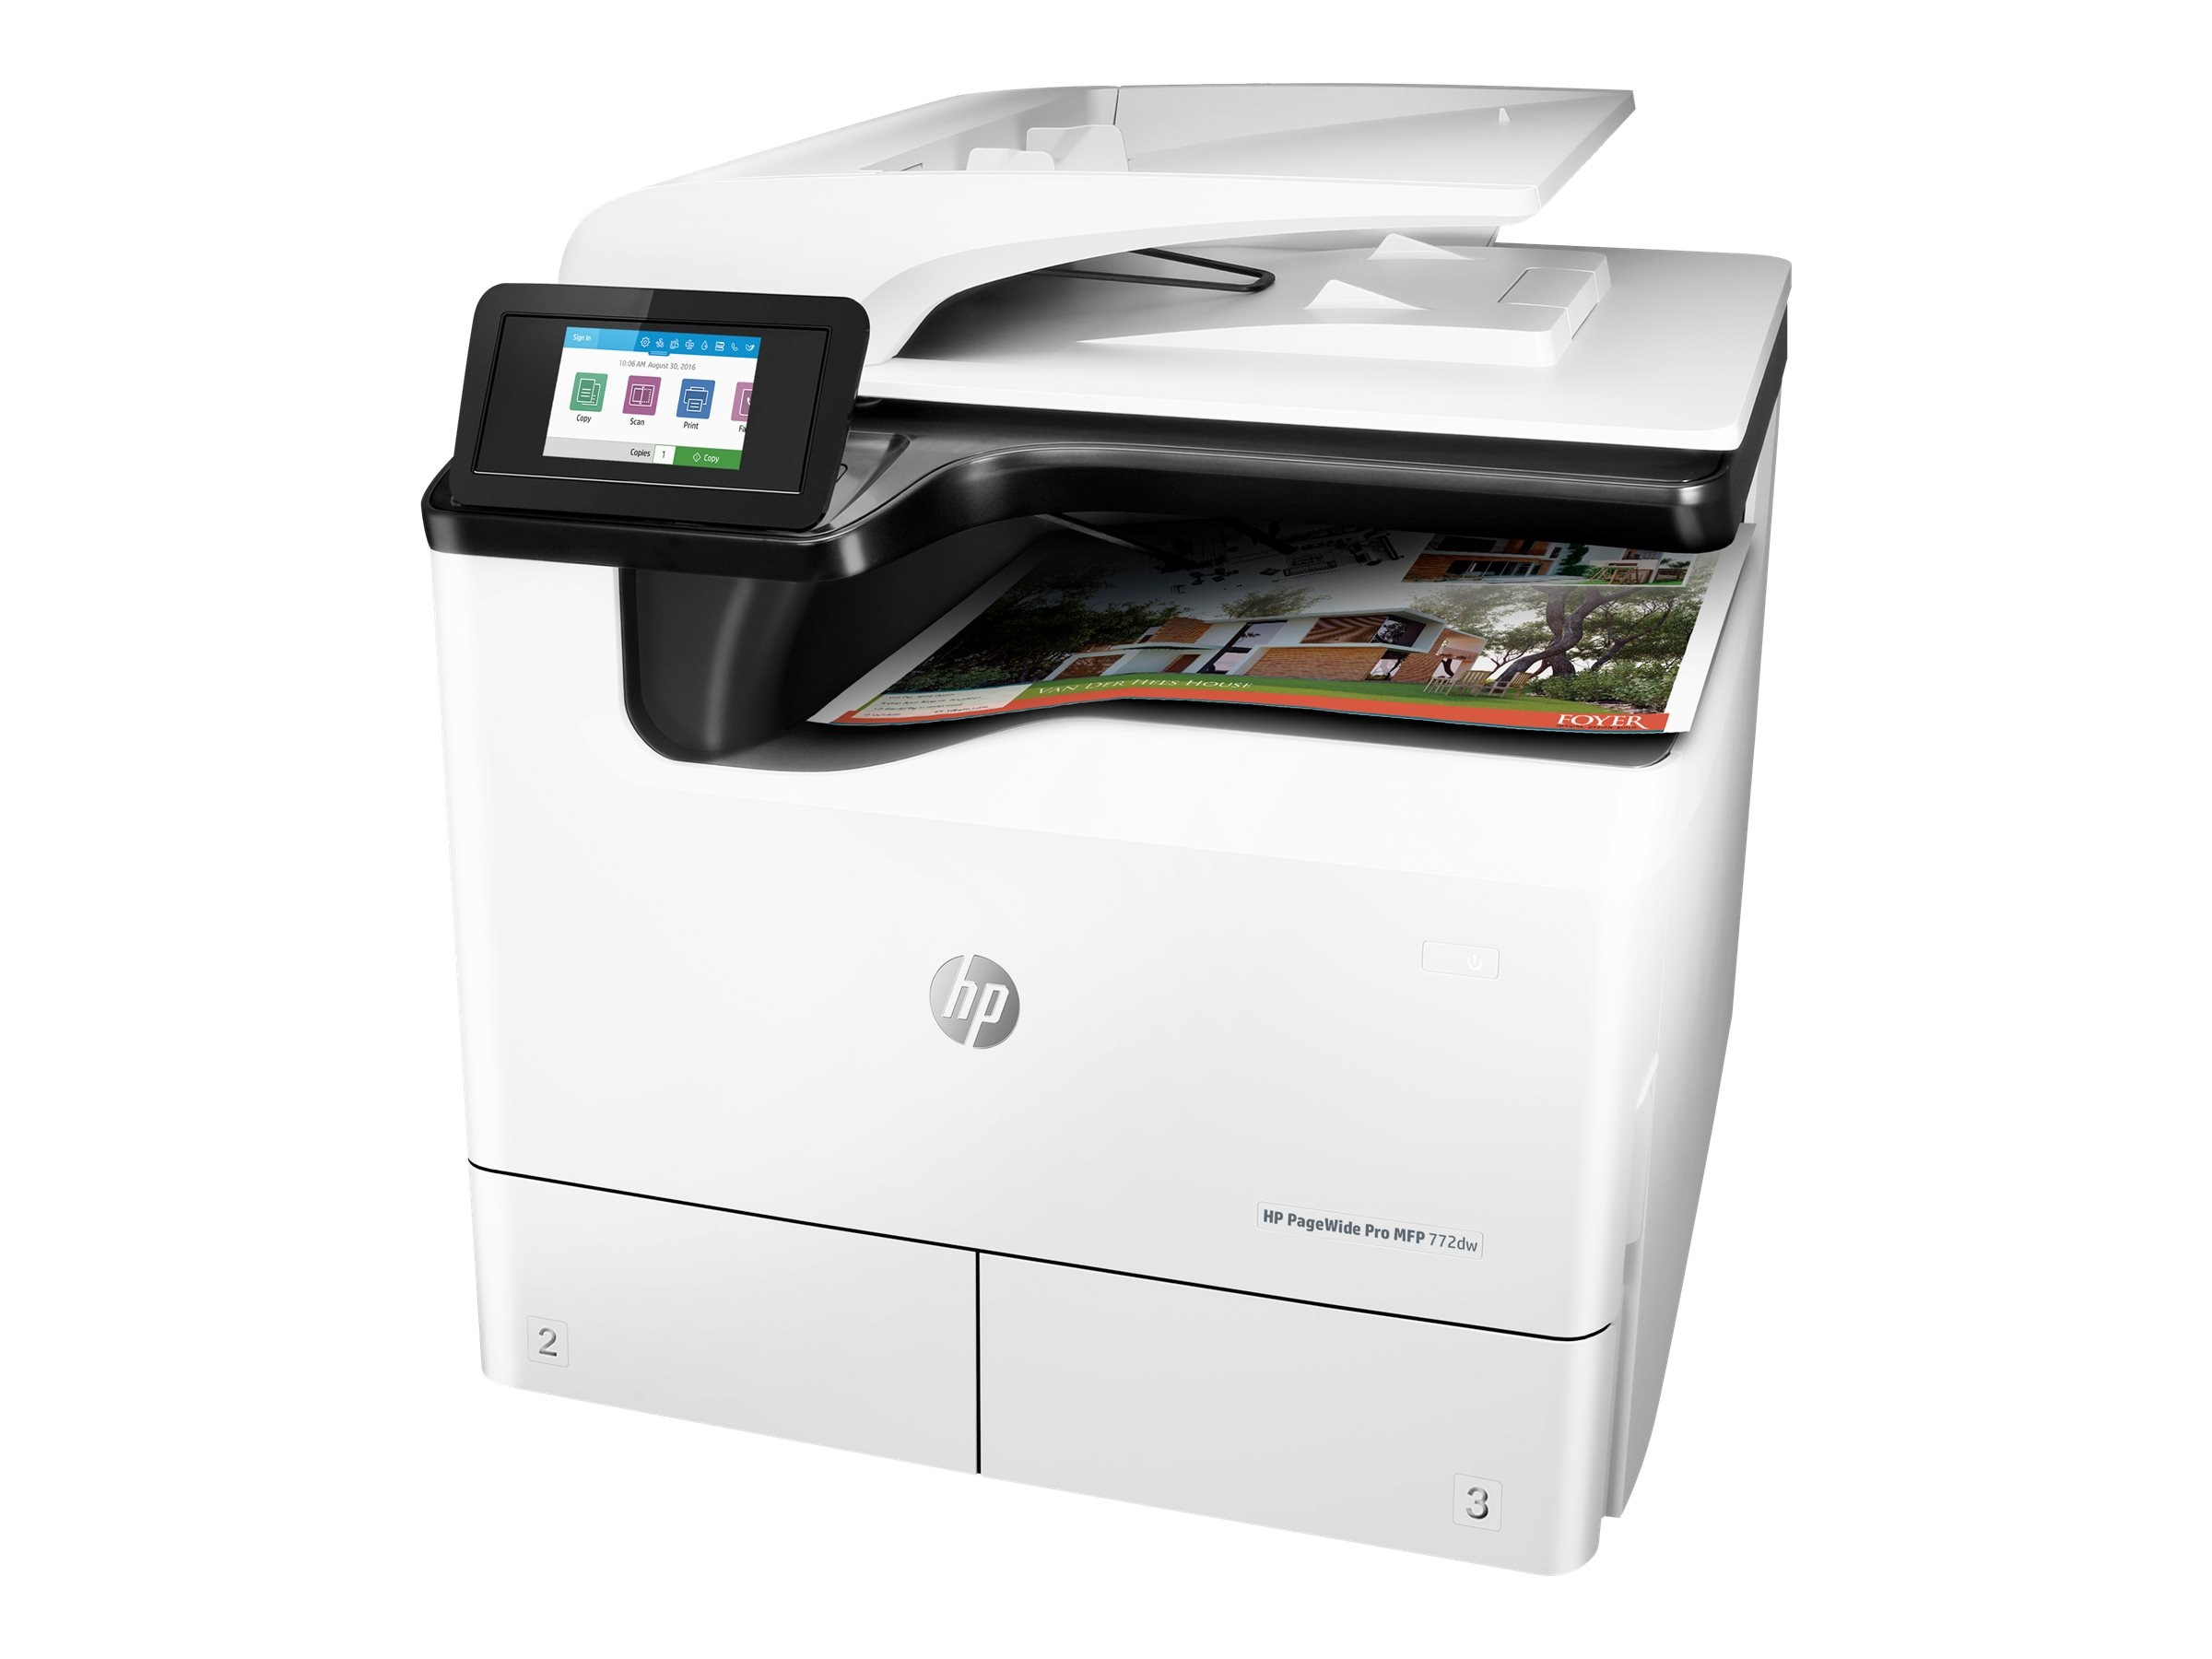 HP PageWide Pro MFP 772dw